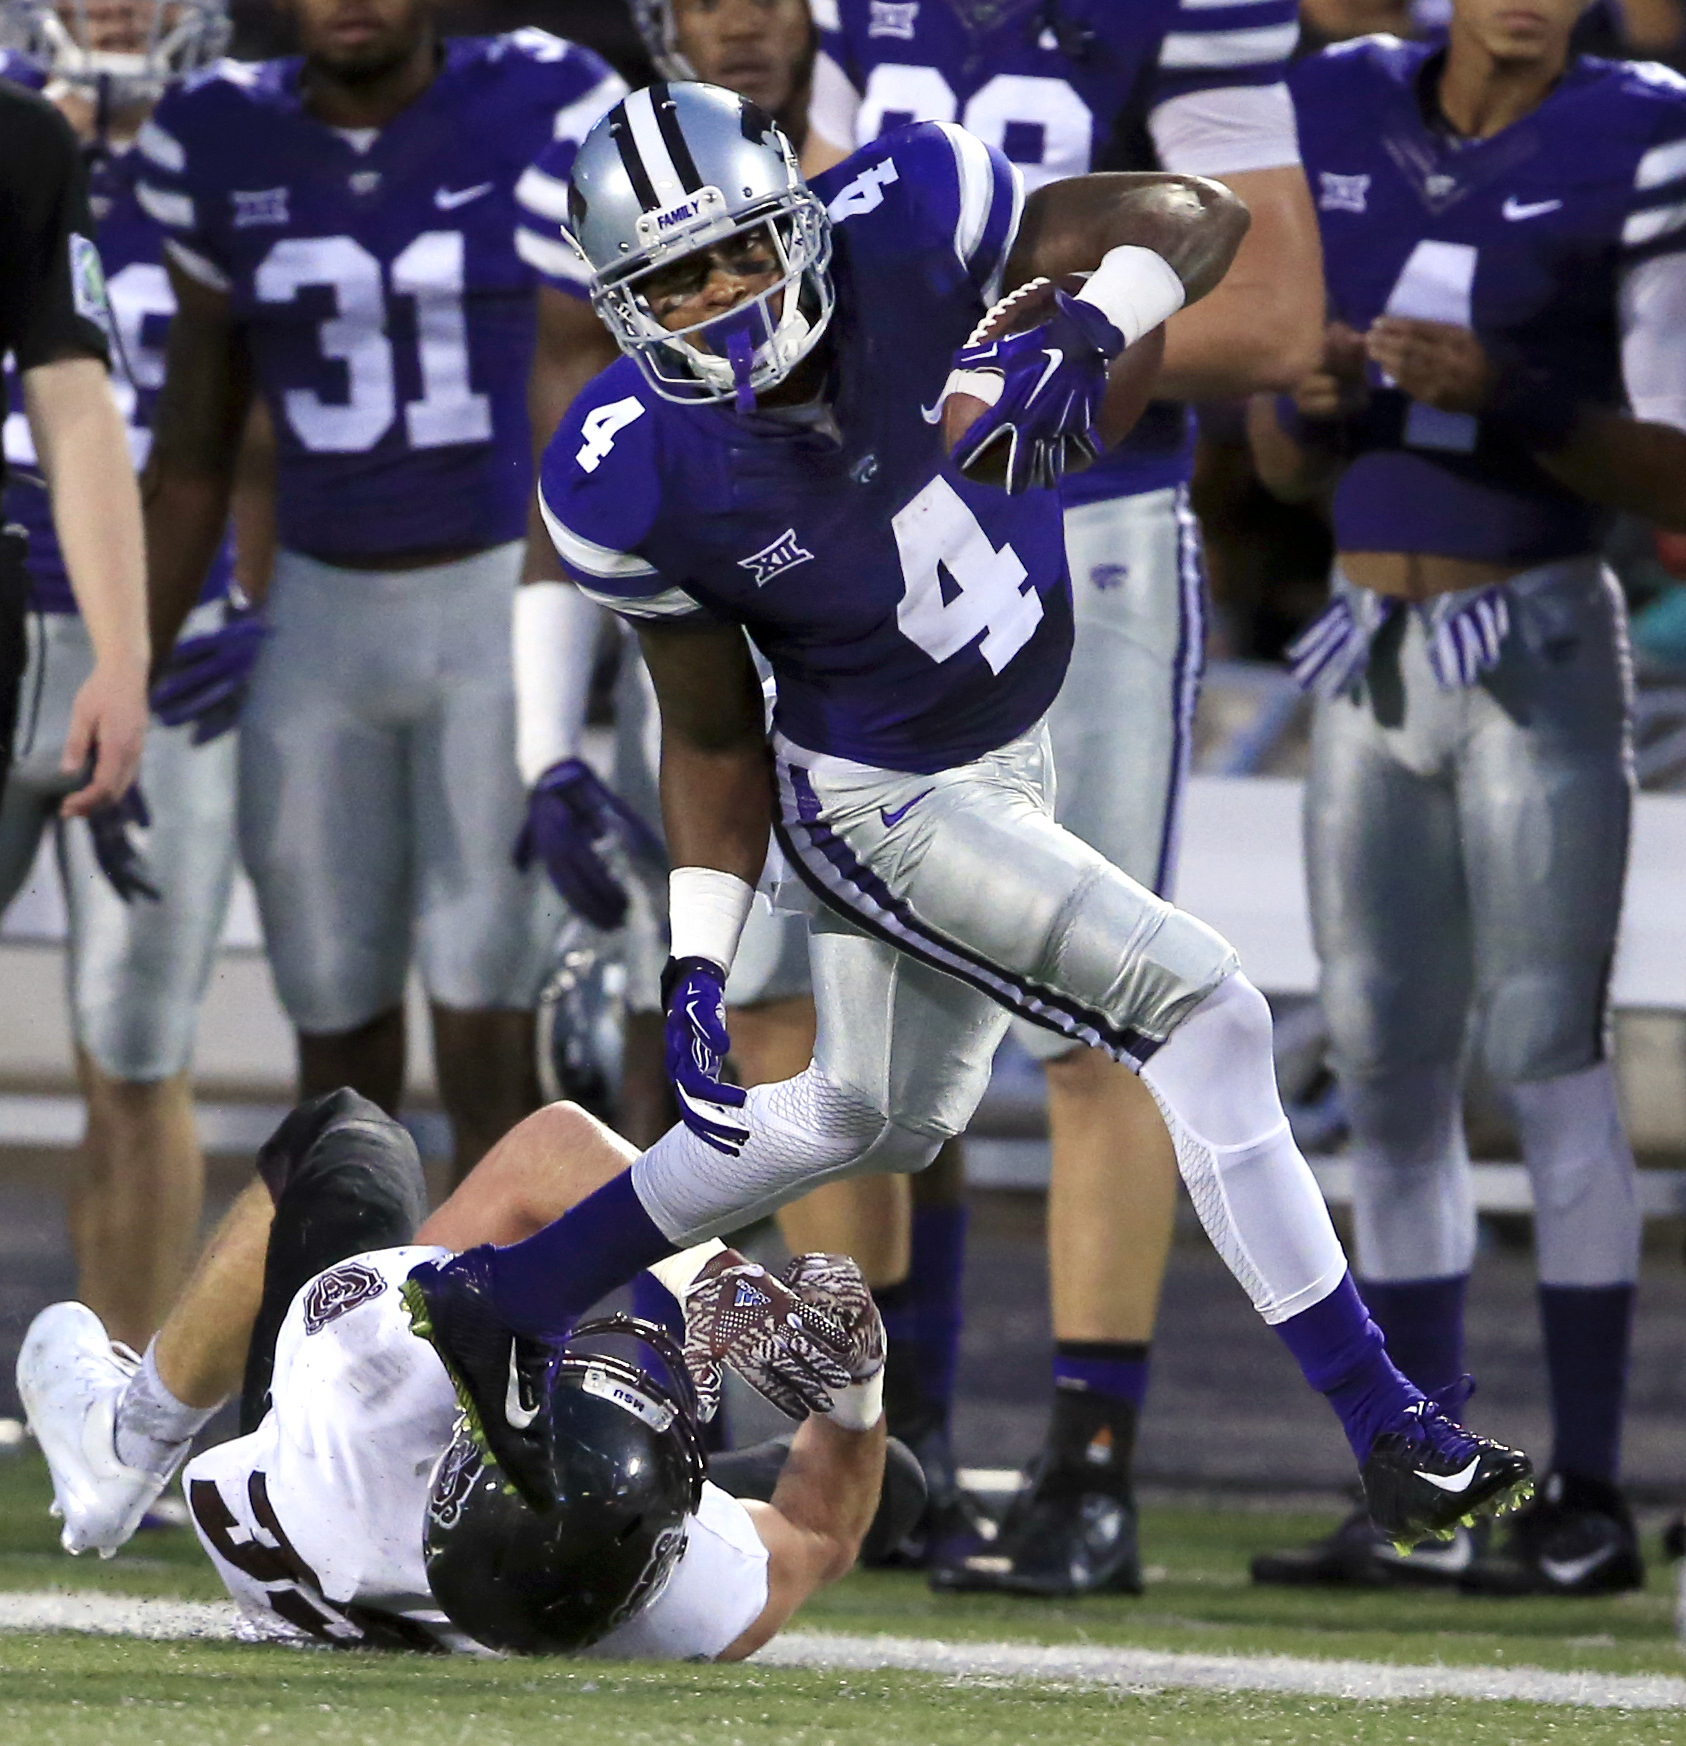 FILE - In this Saturday, Sept. 24, 2016 file photo, Kansas State kick returner Dominique Heath (4) runs over Missouri State's Nick Masoner (39) during the first half of an NCAA college football game in Manhattan, Kan. West Virginia has been burned by Kans